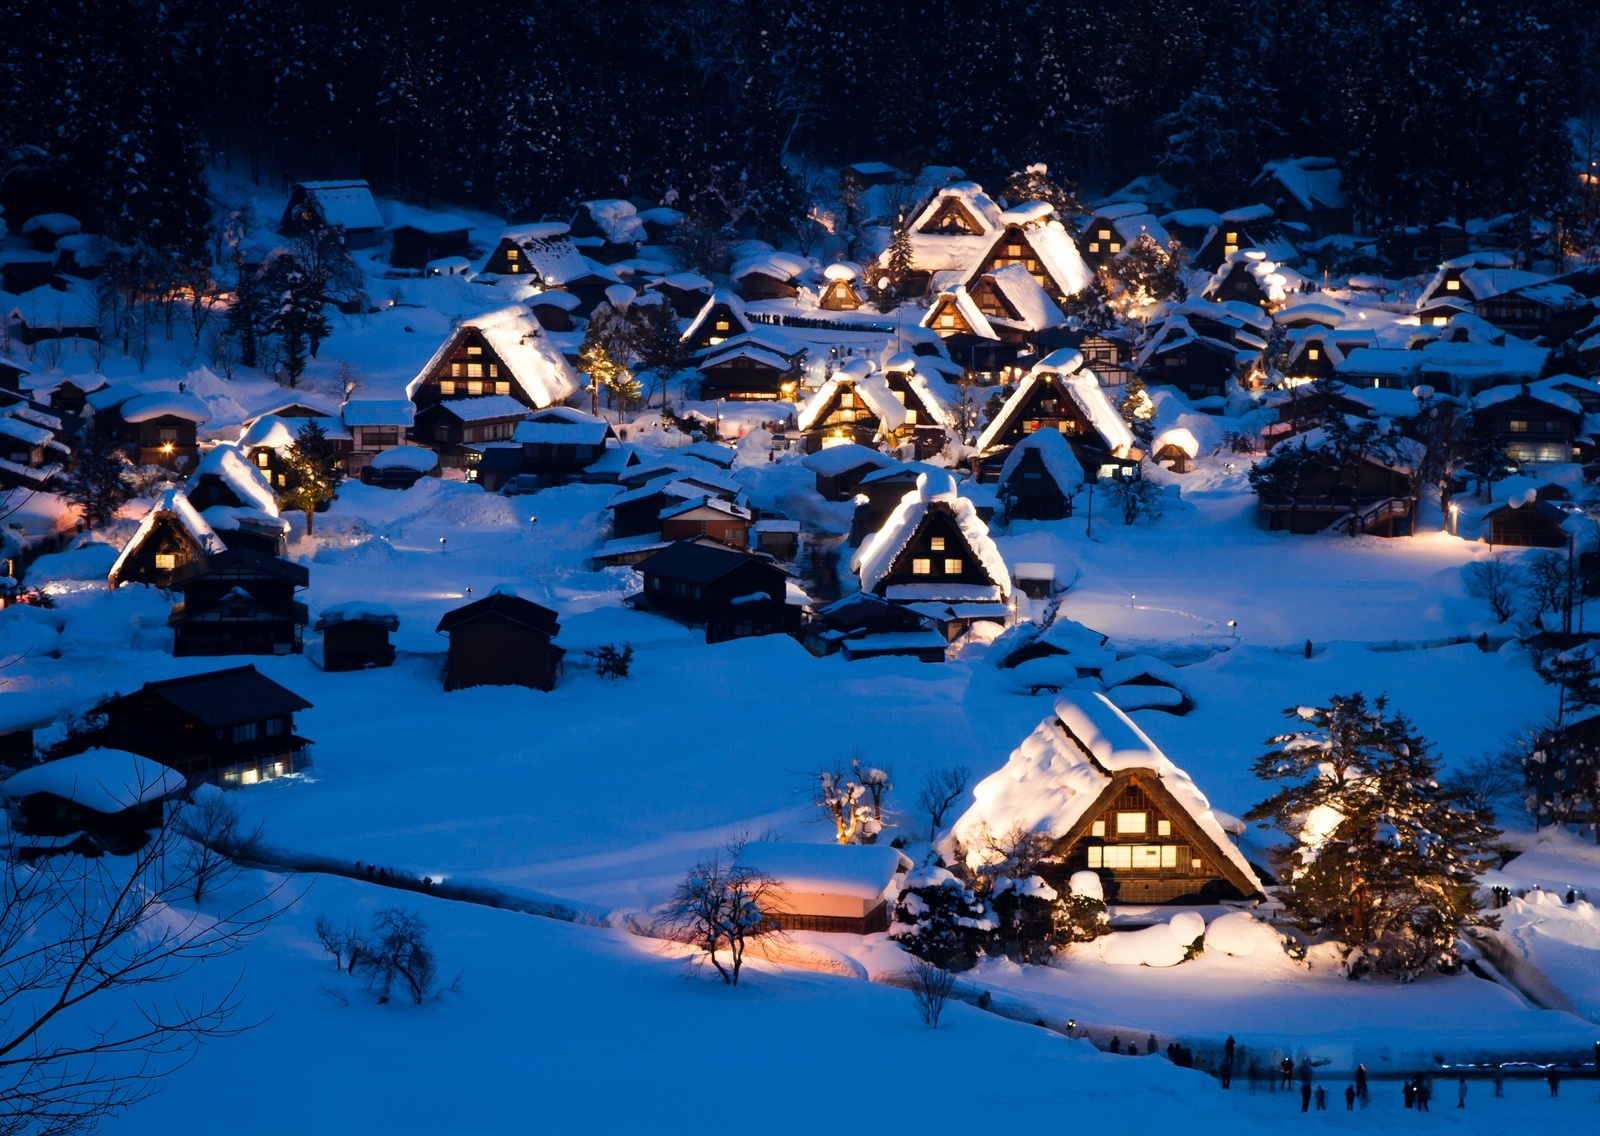 Reasons To Visit Japan In The Winter InsideJapan Tours Blog - 30 wonderfully wintery scenes around world